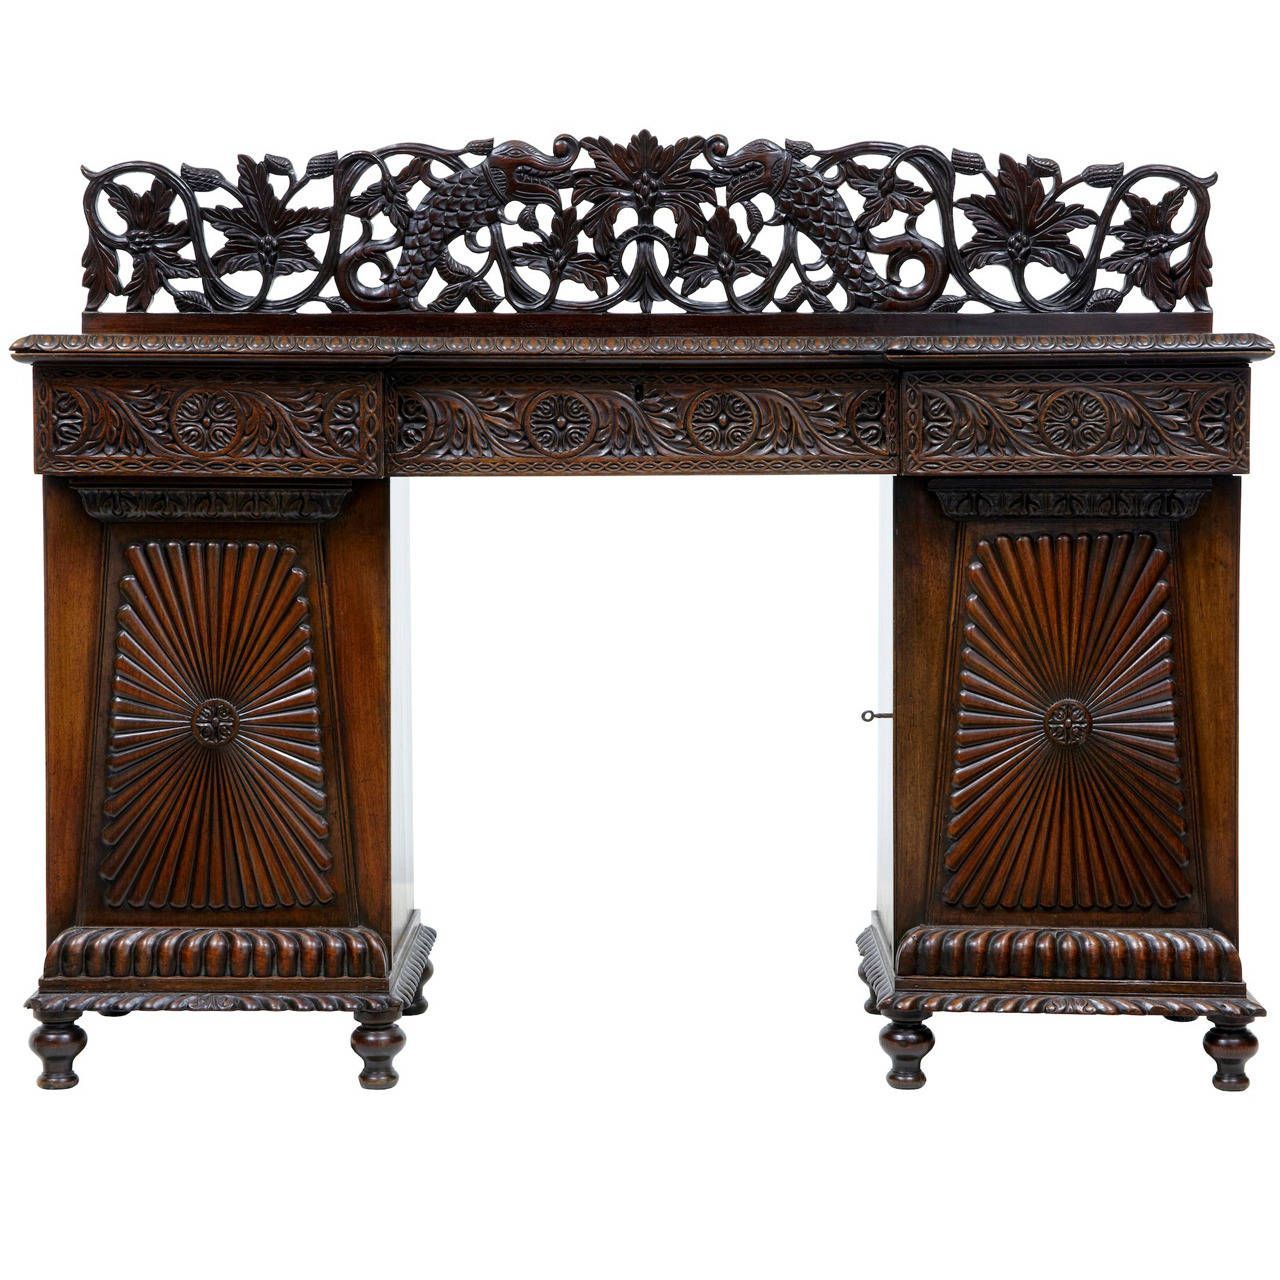 painted indian collections hand products side india quest cupboard end furniture made stool art table